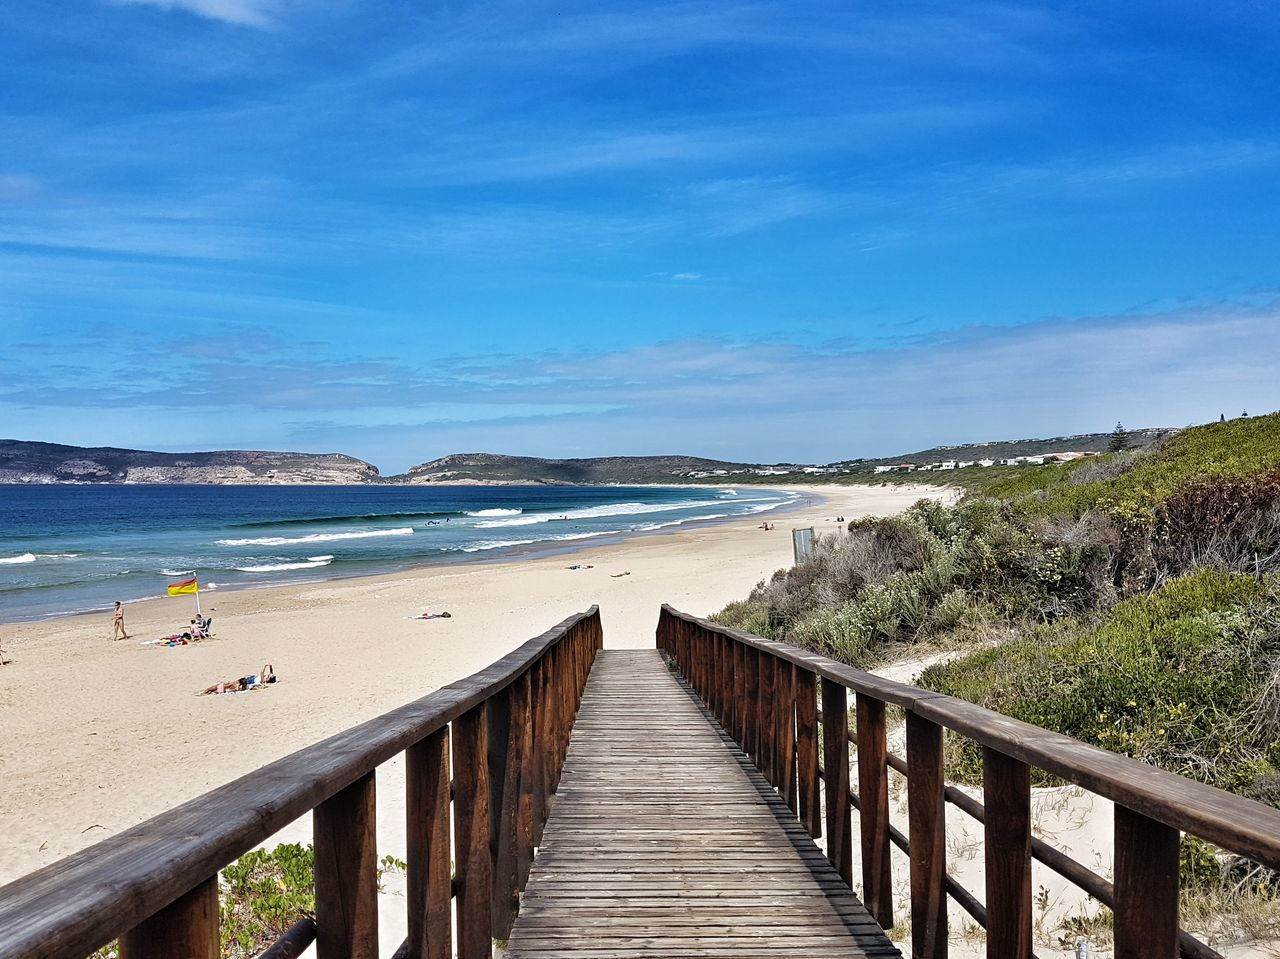 Beach Sea Water Sand Horizon Over Water Wood - Material Pier Outdoors Summer Day Nature Sky Vacations Blue Scenics Beauty In Nature No People Southafrica First Eyeem Photo EyeEmNewHere Plettenberg Landscape